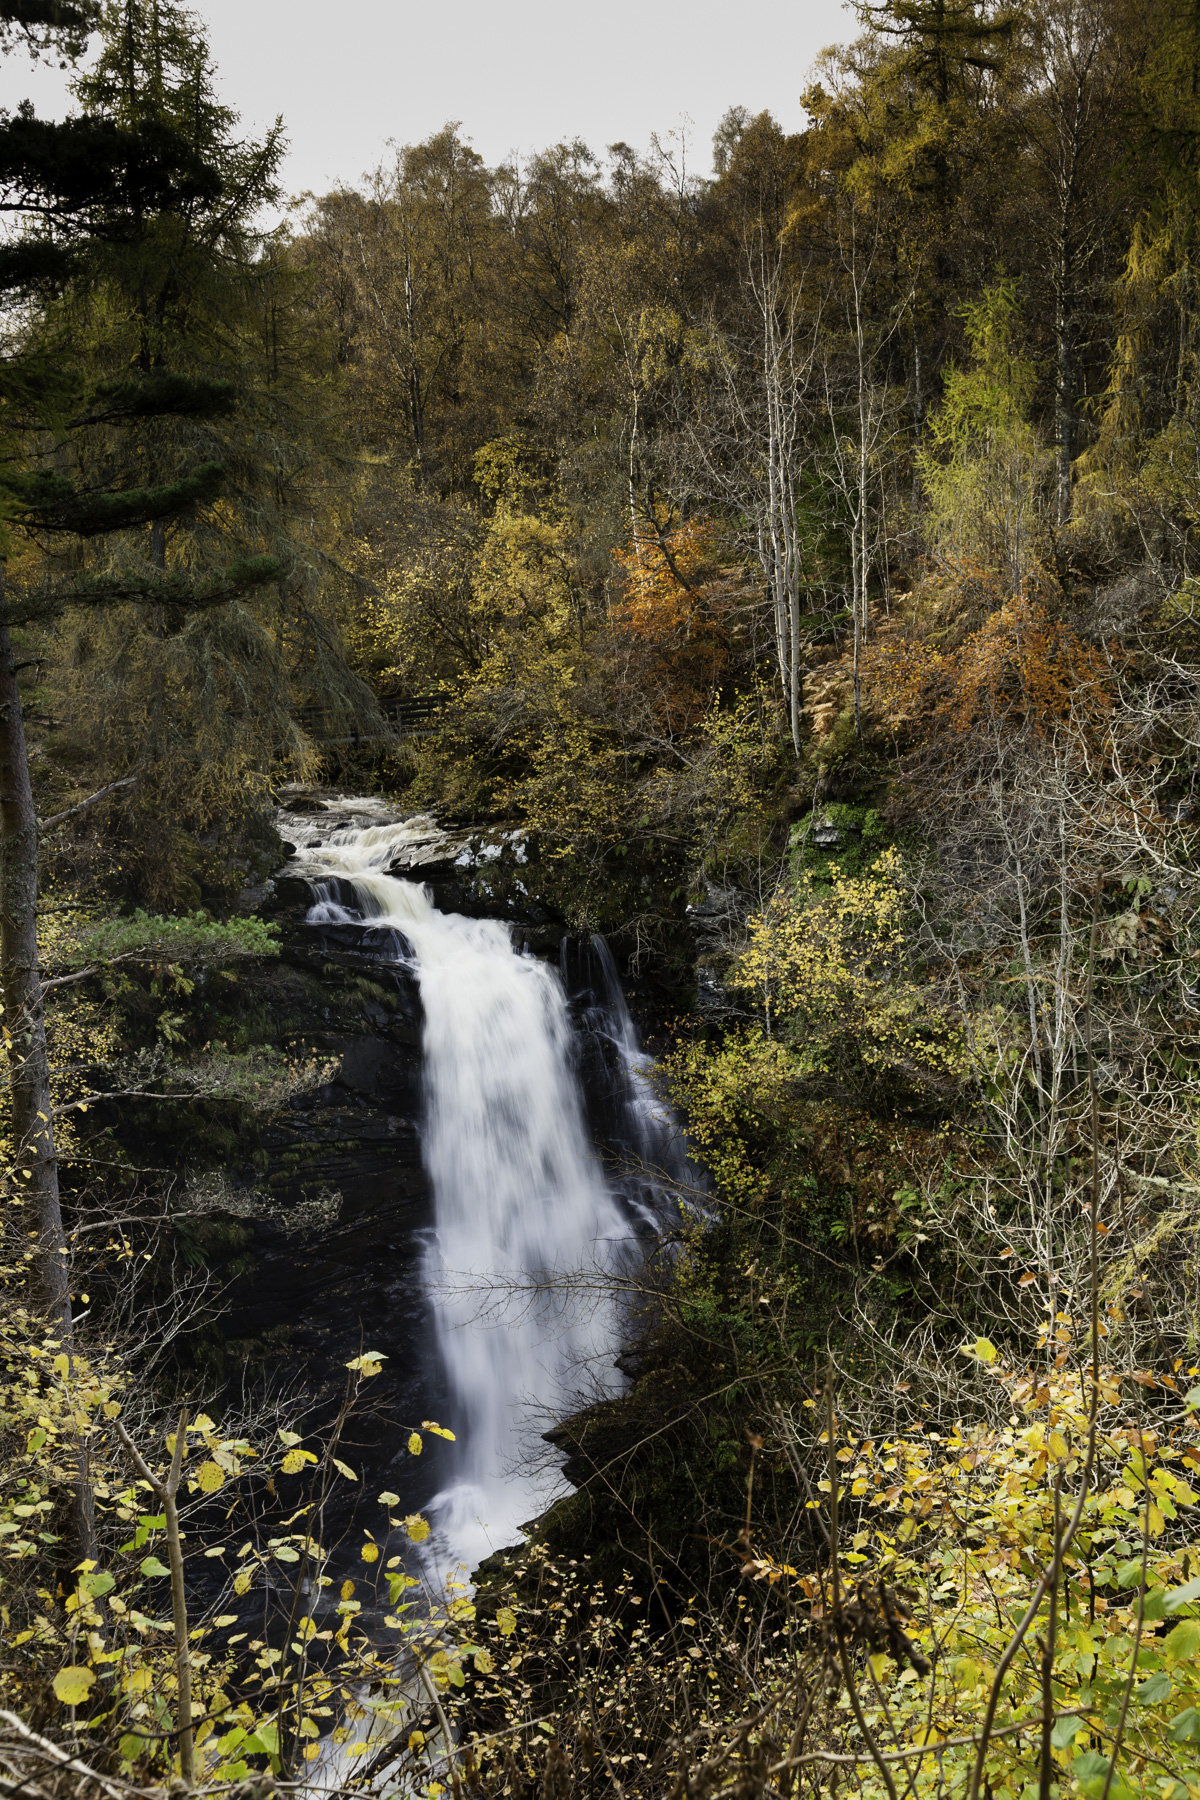 Large waterfall cascading seen across the valley from the path at Birks of Aberfeldy.